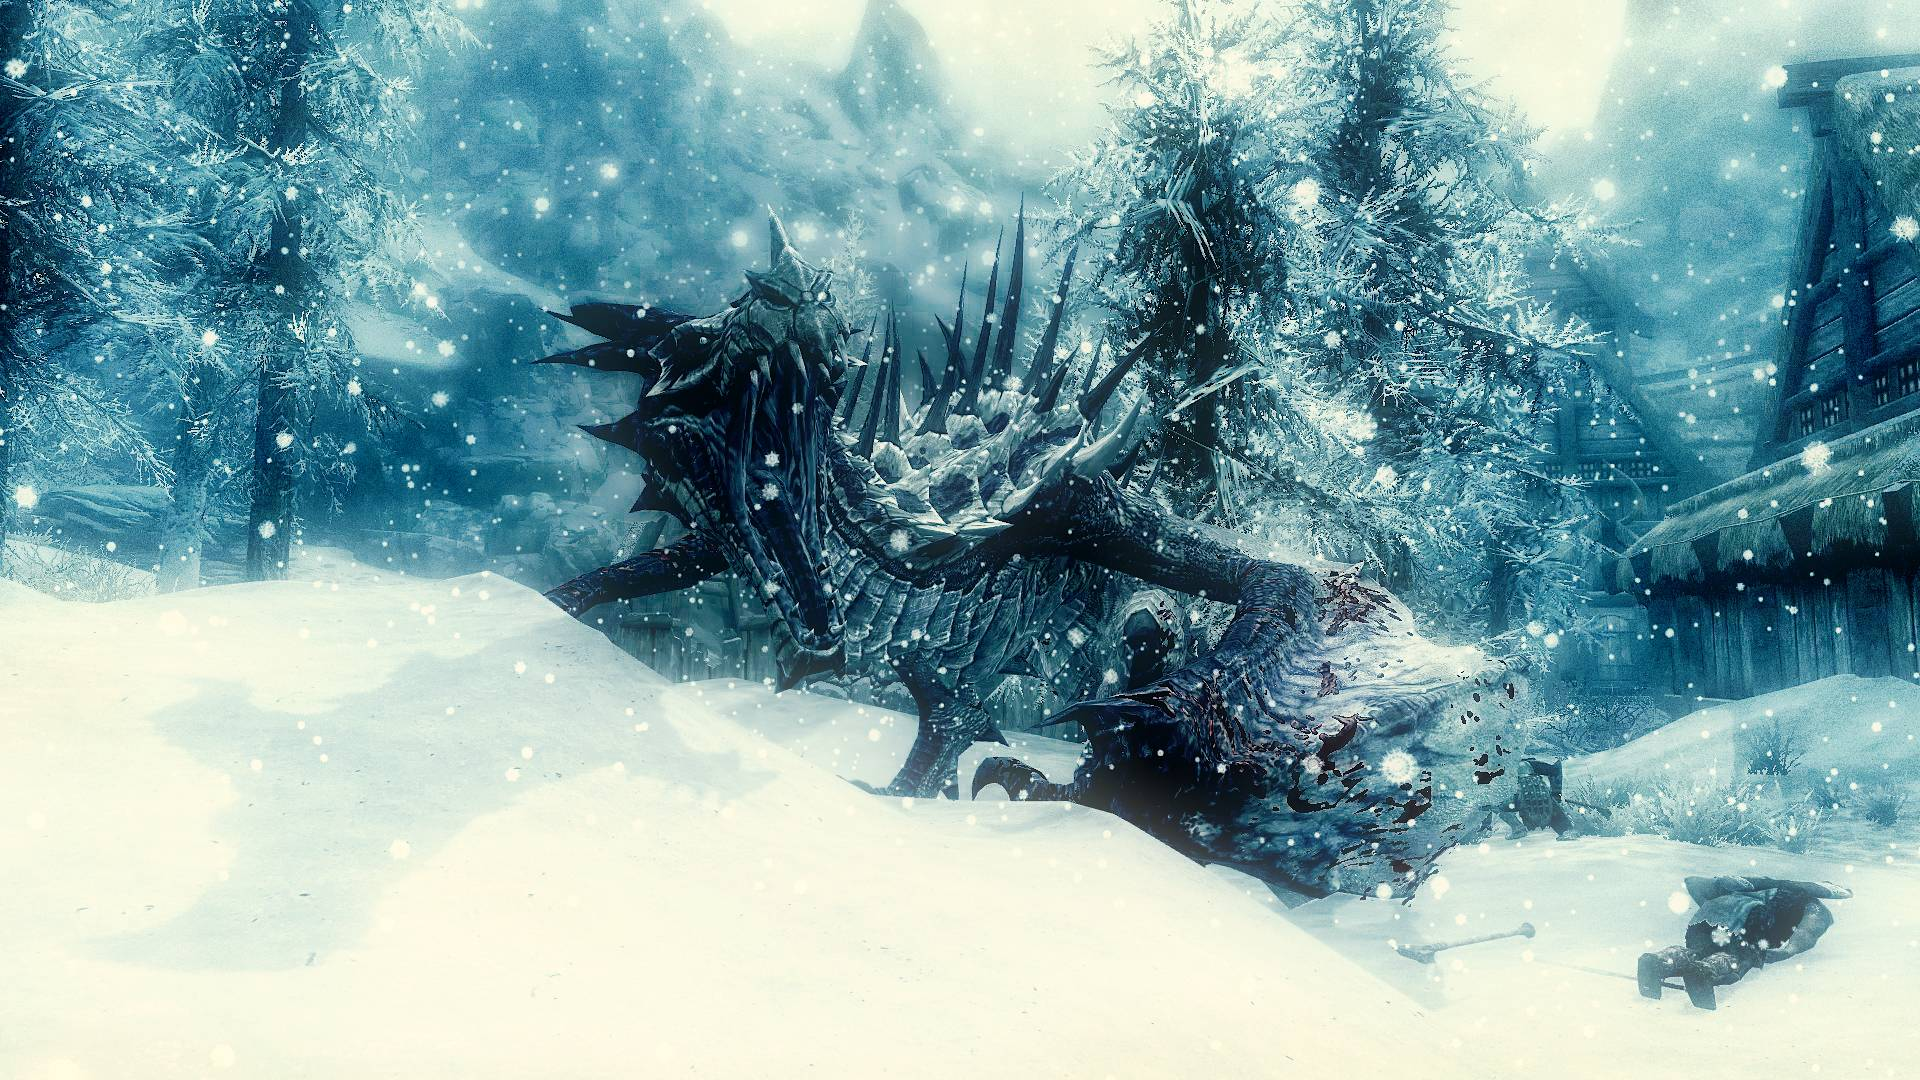 Wallpapers For > Skyrim Dragon Wallpapers Hd